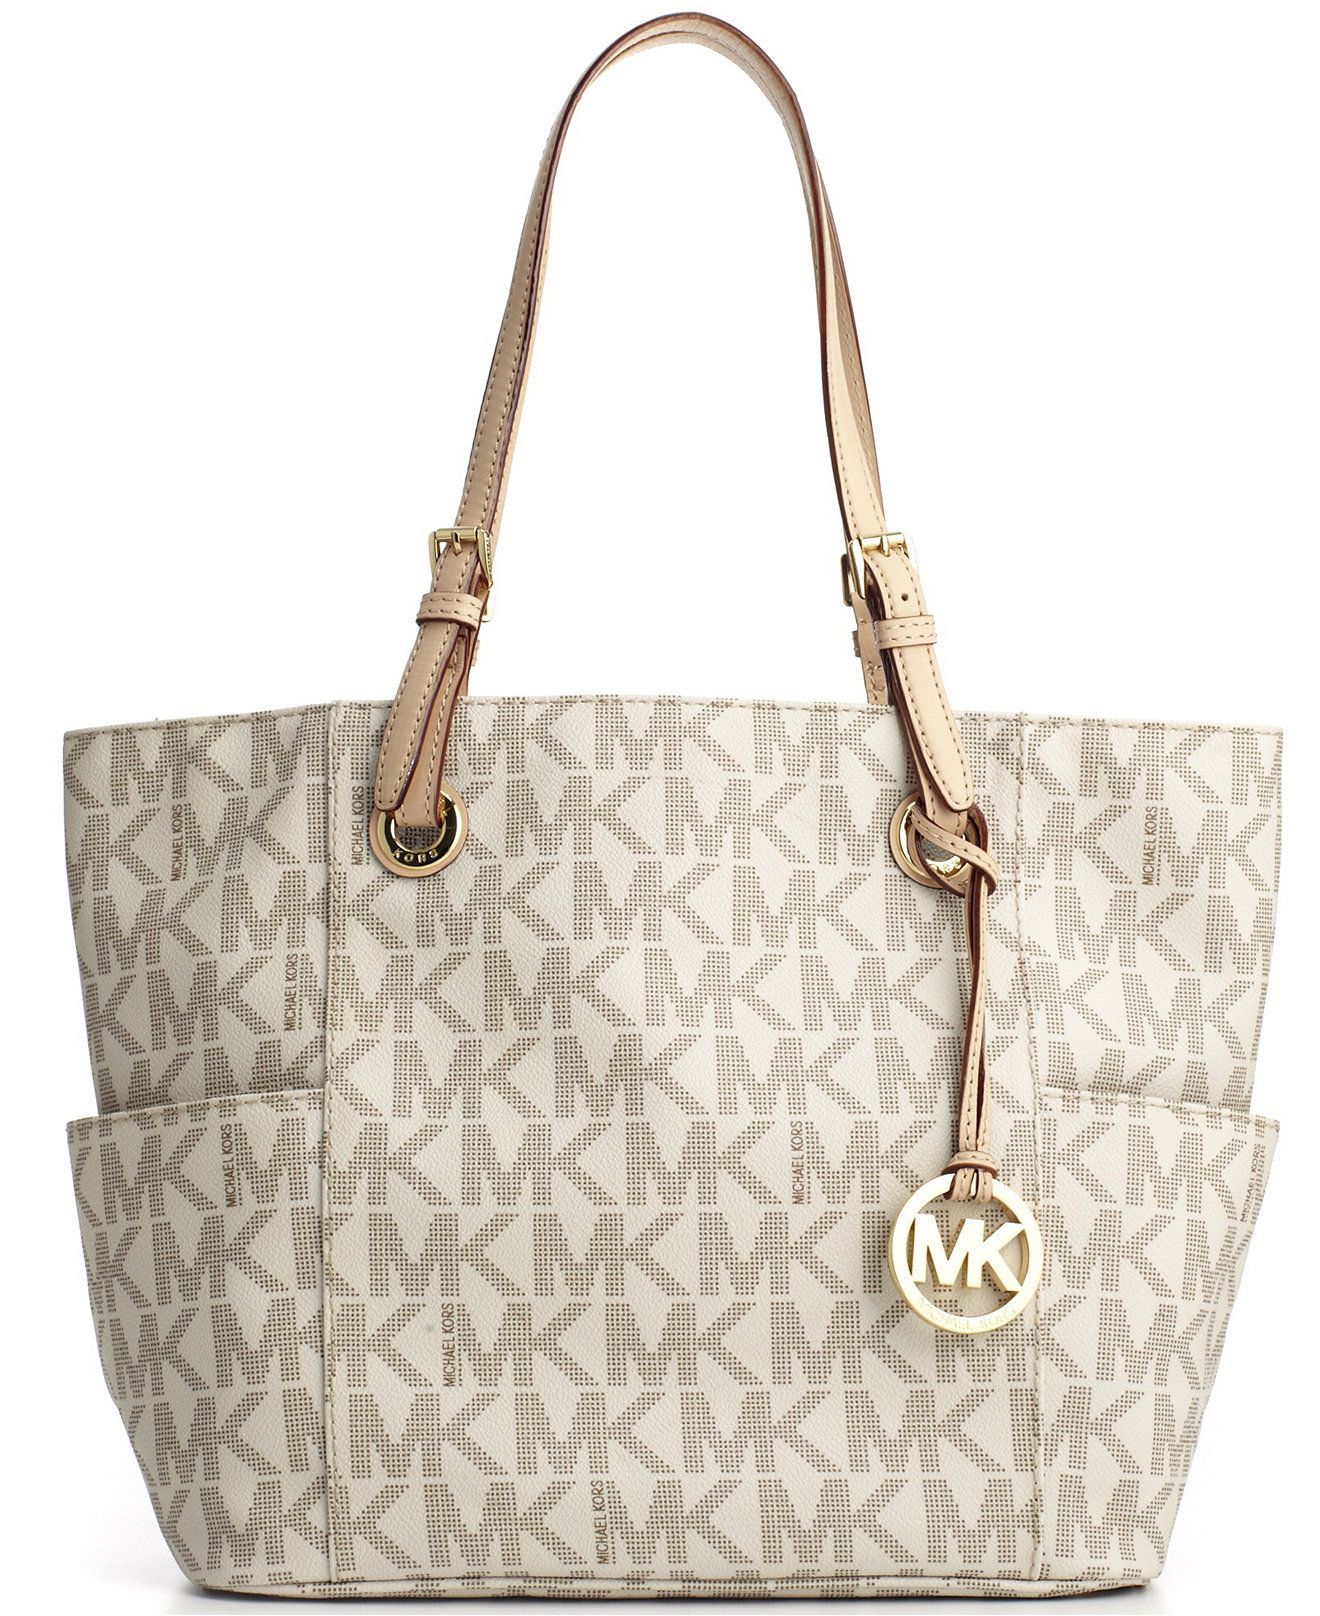 MICHAEL Michael Kors Signature Tote | Tote handbags and Handbag ...